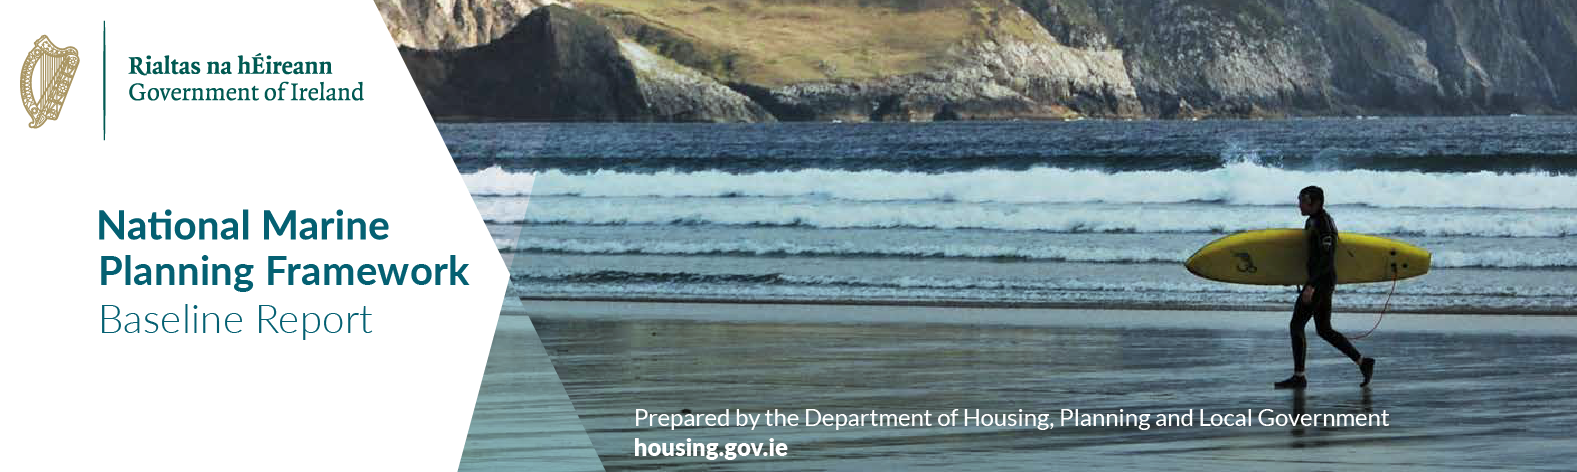 National Marine Planning Framework Baseline Report Published